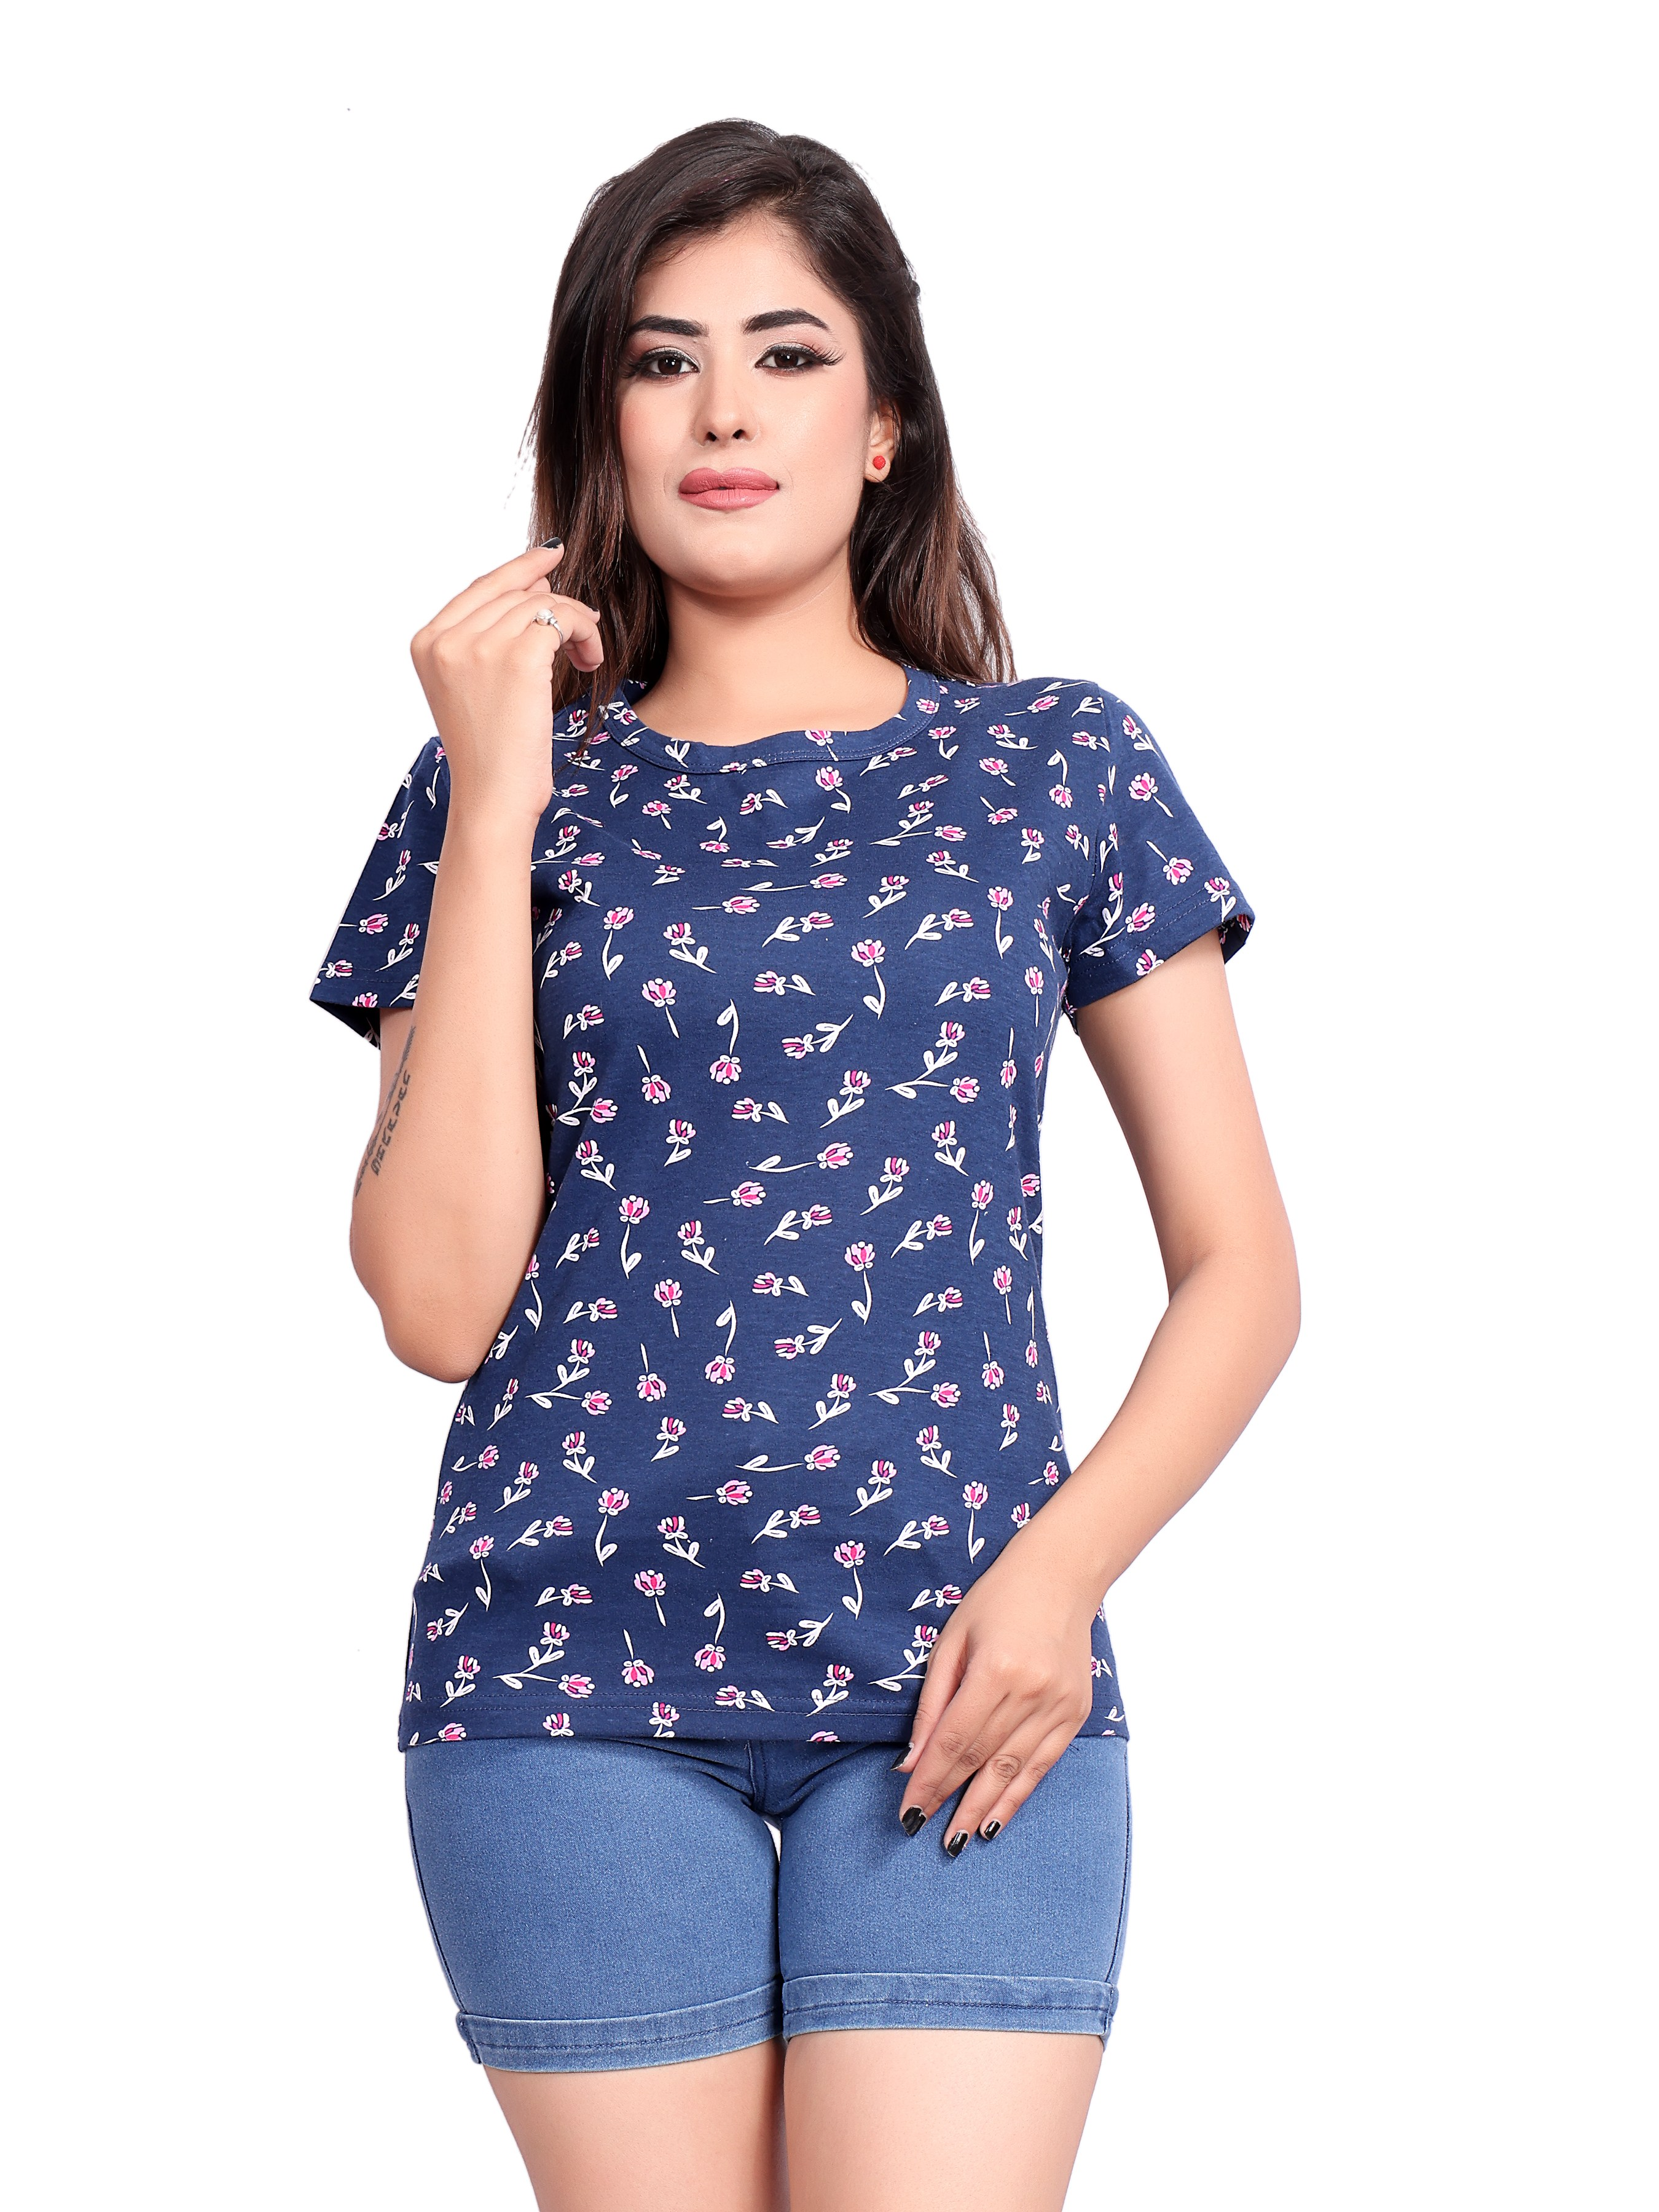 Impex | IMPEX Women's Blue Cotton Hosiery Printed Round Neck T-shirt